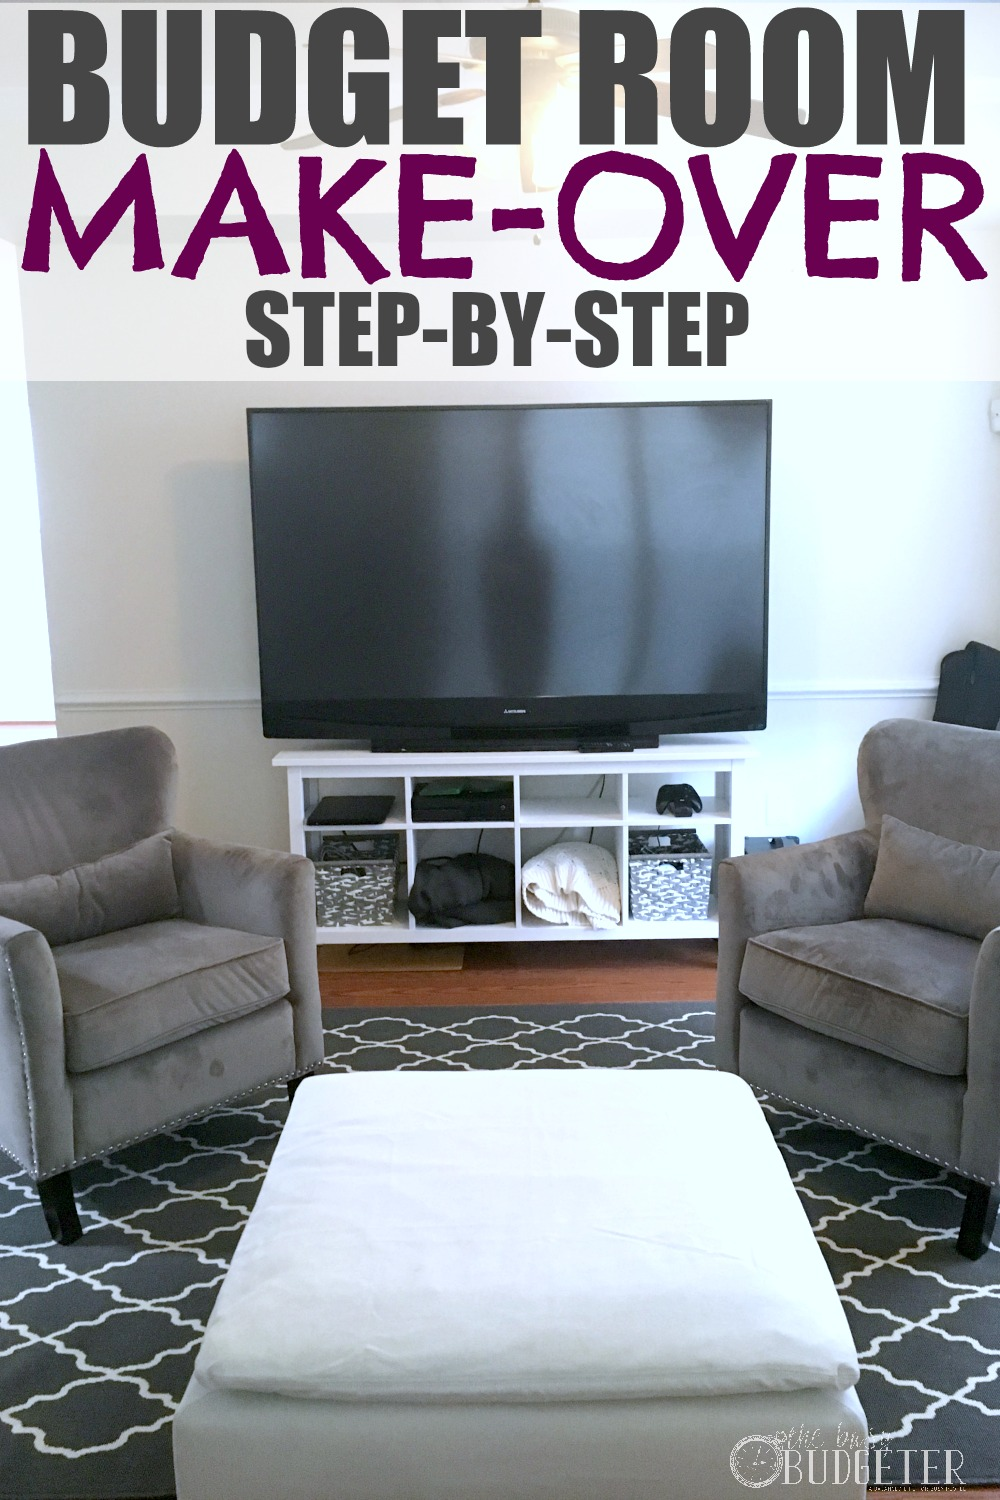 diy small living room makeover contemporary chairs for uk how to redesign your home on a budget busy so excited about this maybe i can finally make over